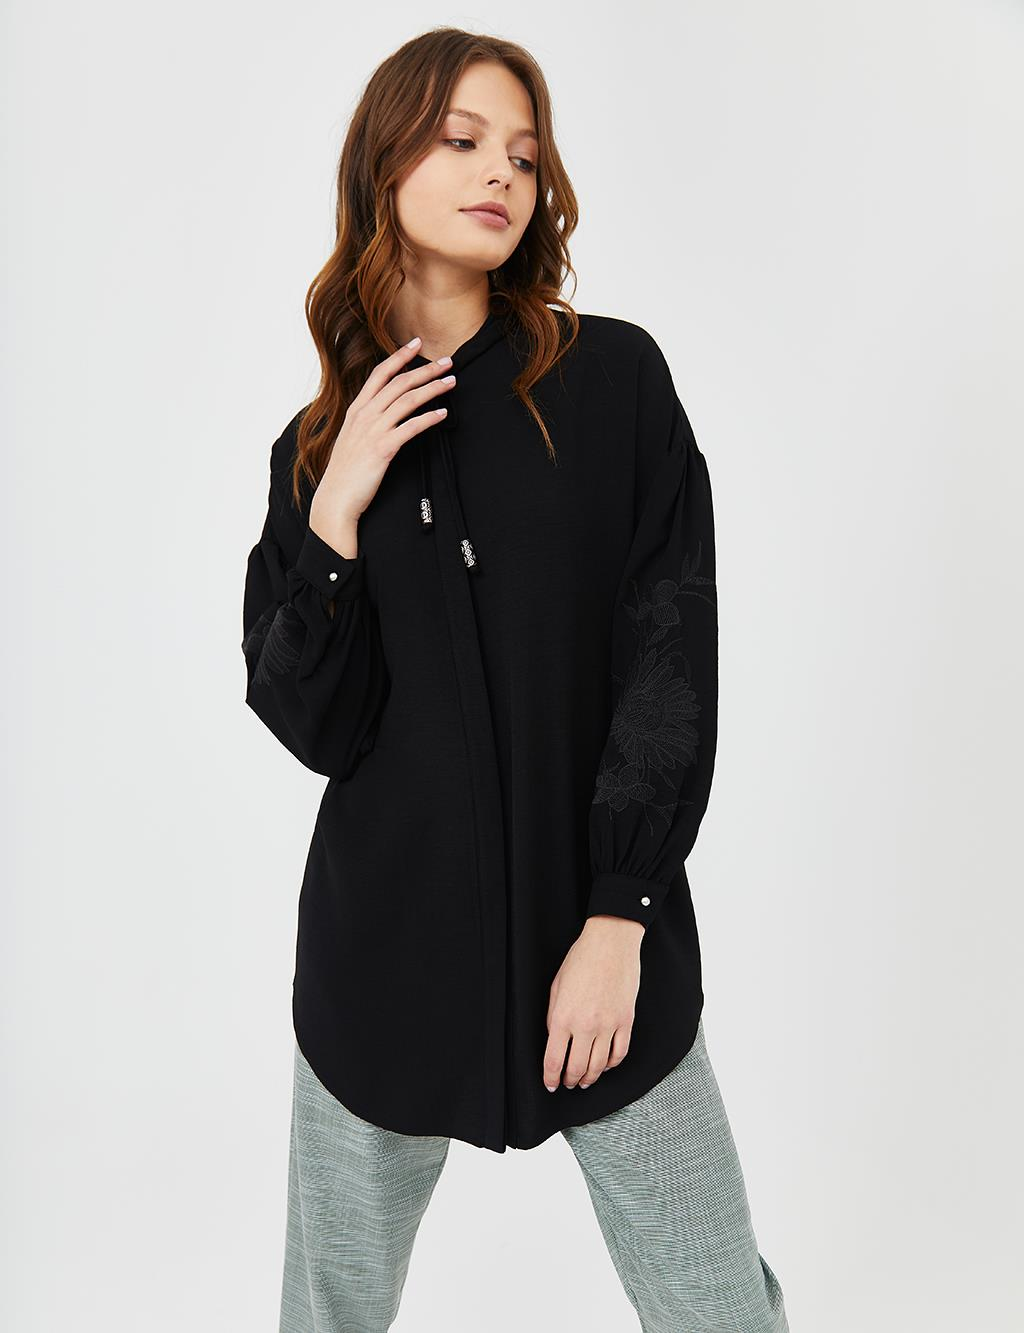 KYR Embroidered Balloon Sleeve Tunic B21 81009 Black